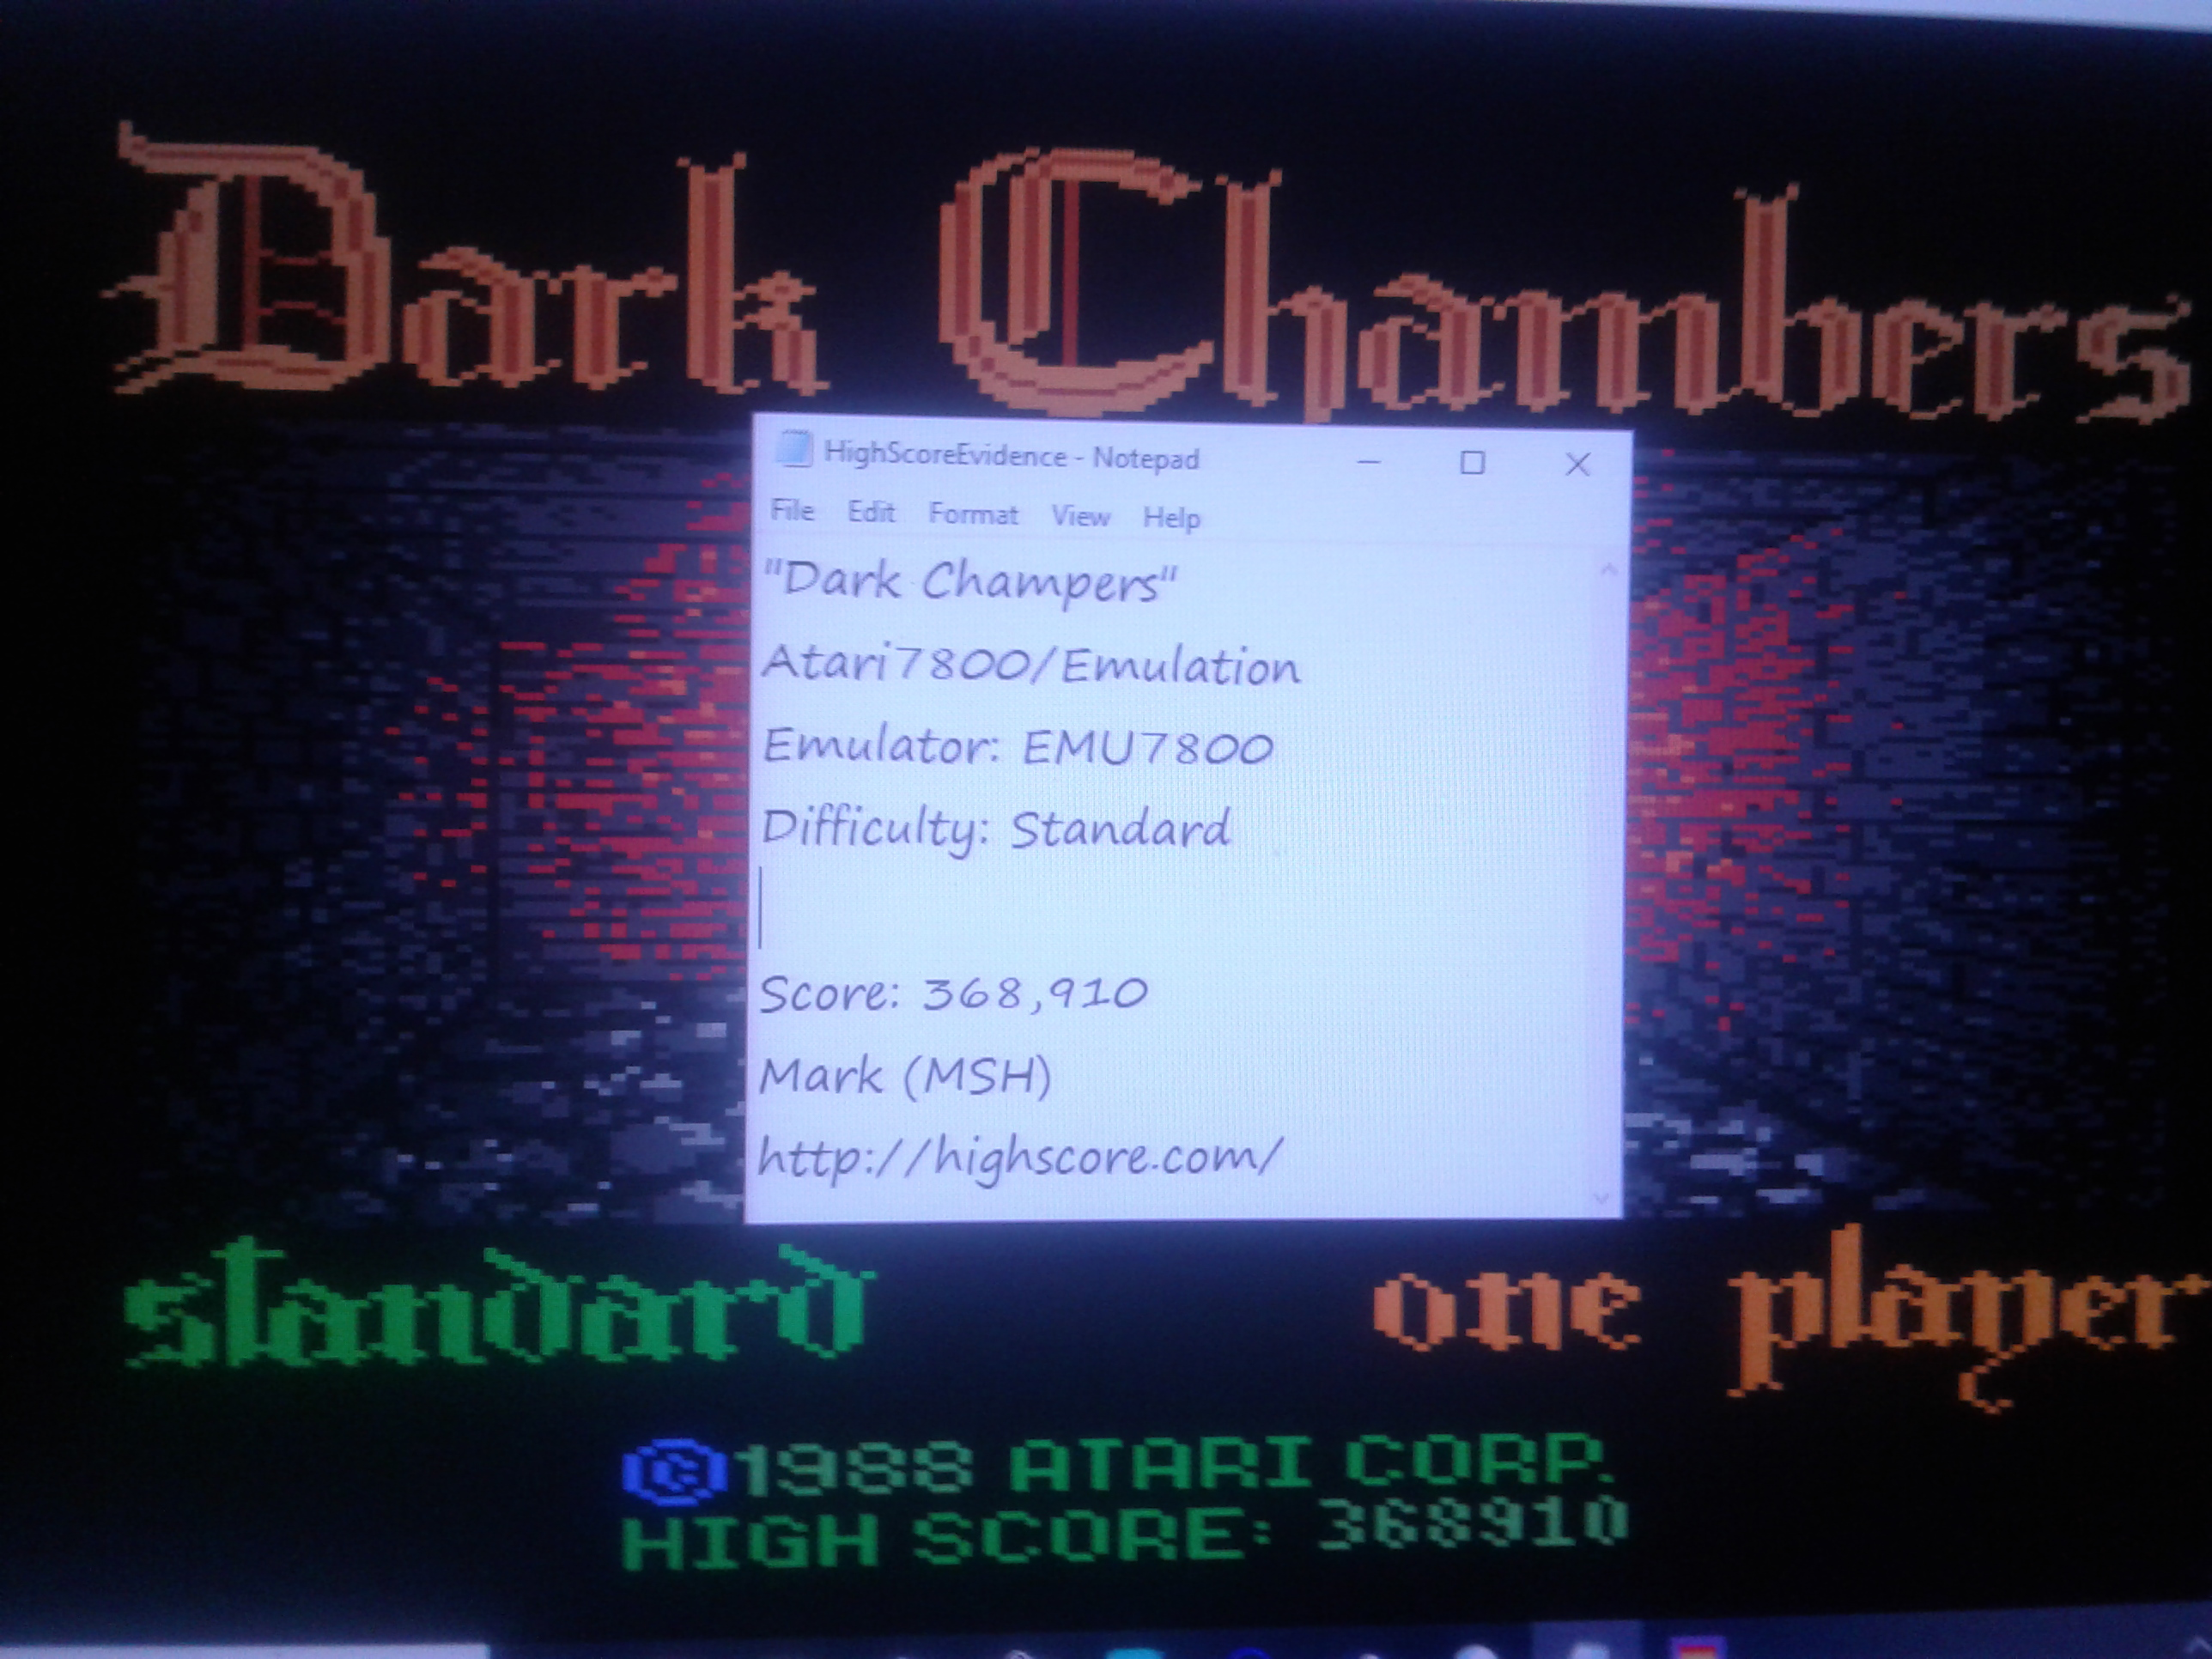 Mark: Dark Chambers: Standard (Atari 7800 Emulated) 368,910 points on 2019-01-20 04:22:02